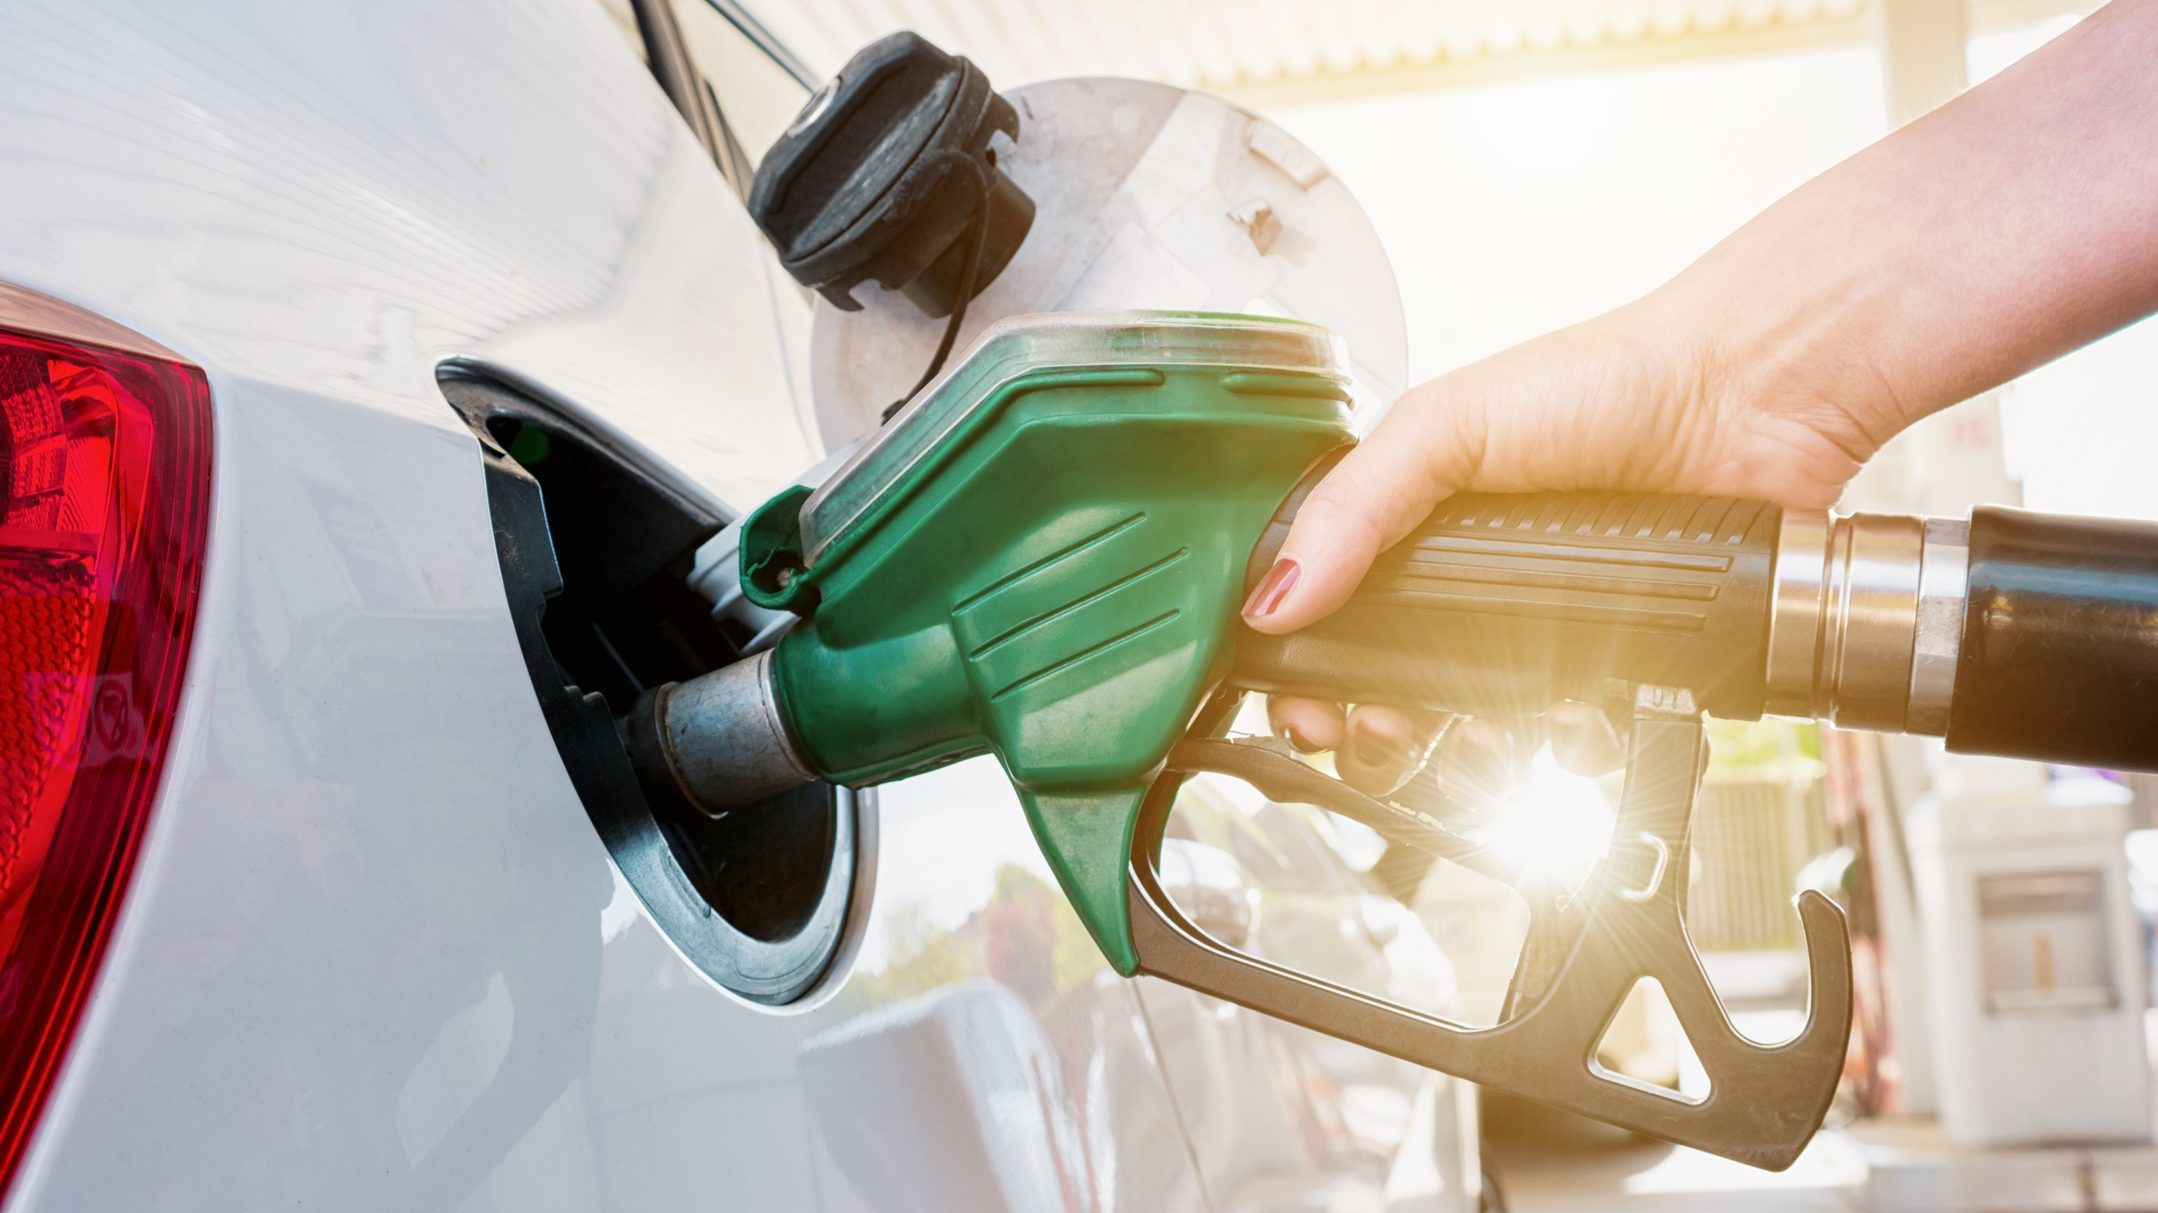 fuel tax increase originally planned now scrapped